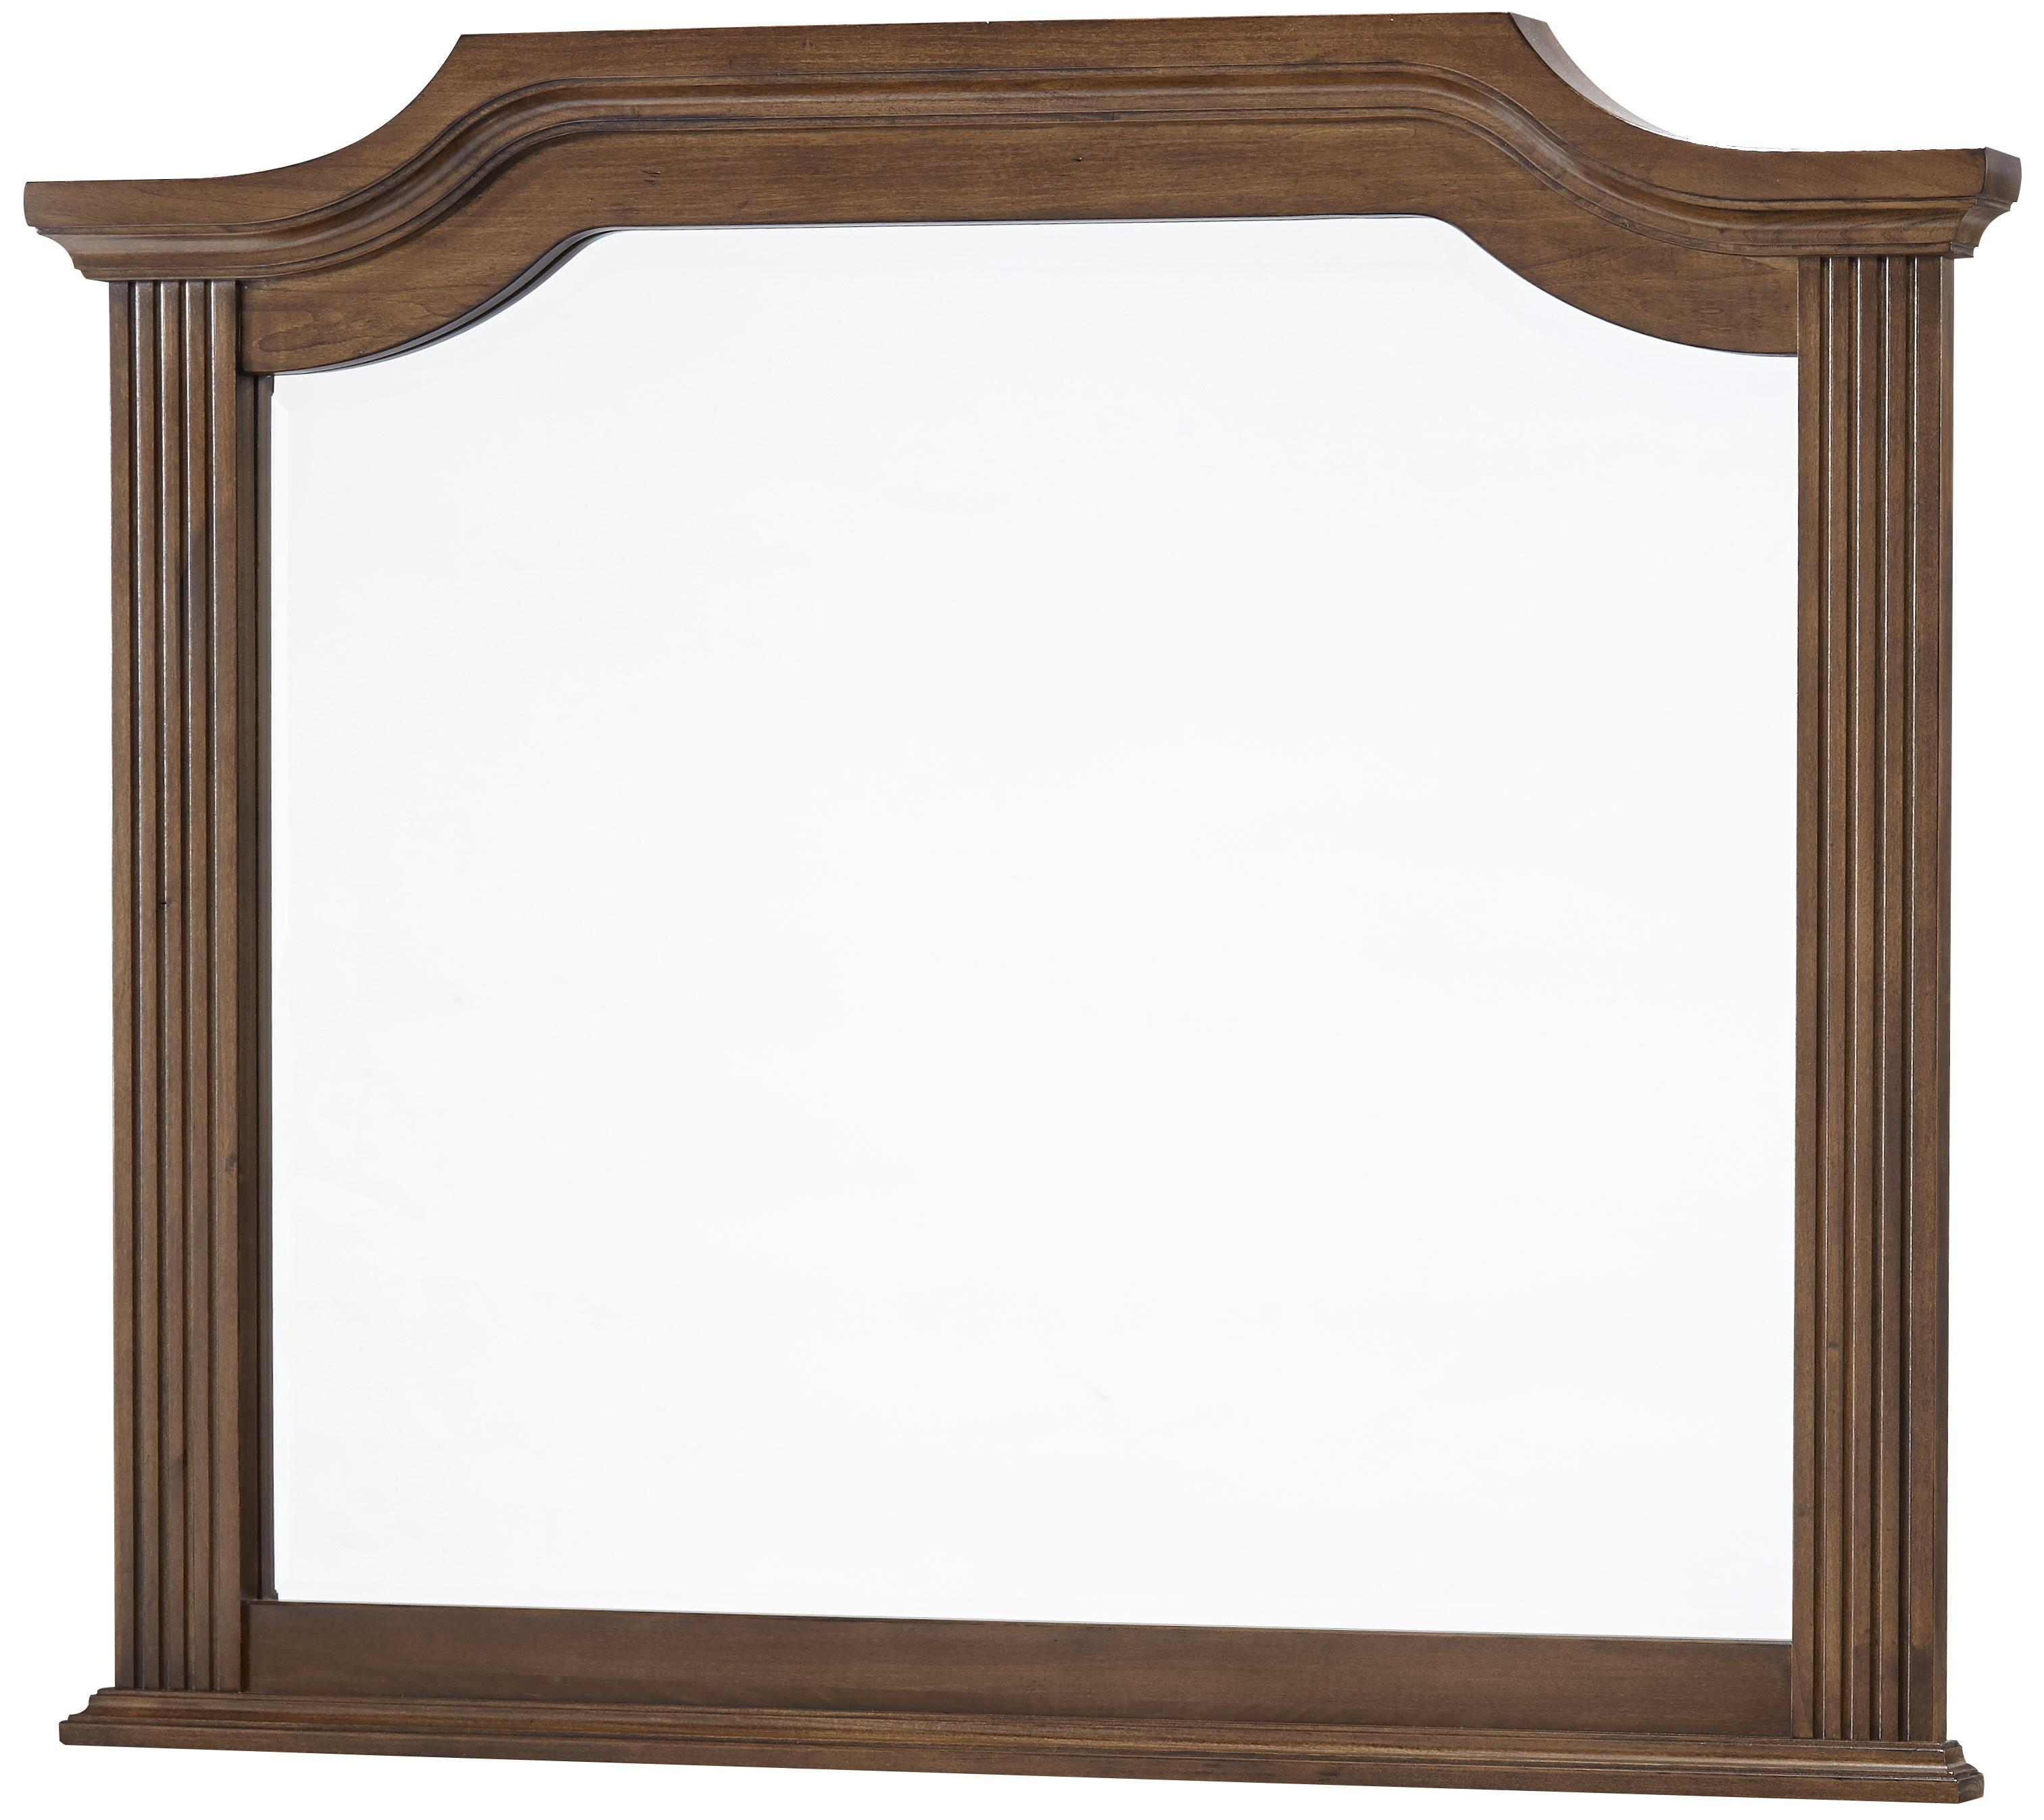 Vaughan Bassett Affinity Arch Mirror - Beveled glass - Item Number: 562-447